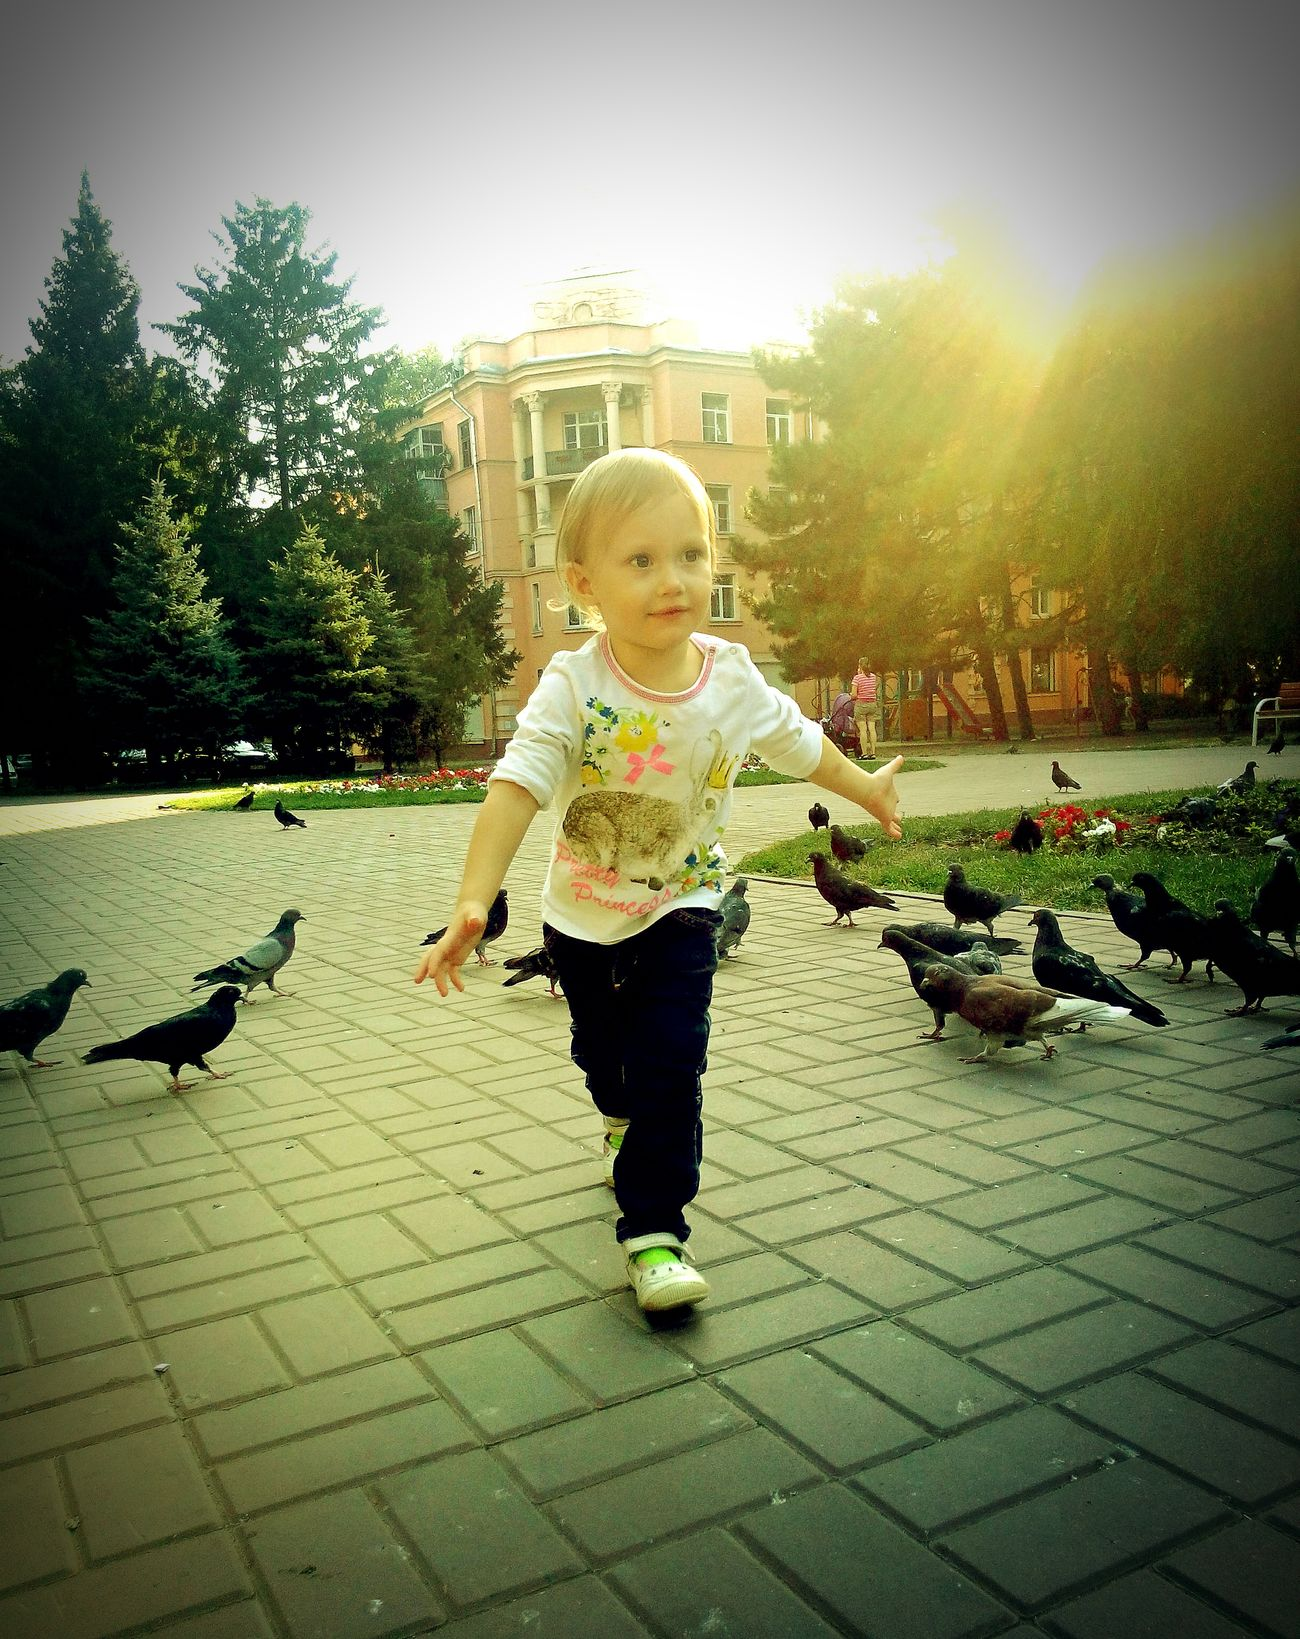 Baby Sunlight Child Children One Person Outdoors Day Real People кормитьголубей птицы площадь голуби Ростов-на-Дону Pigeon Doves Animal Themes Rostov-on-Don City Pigeons Architecture